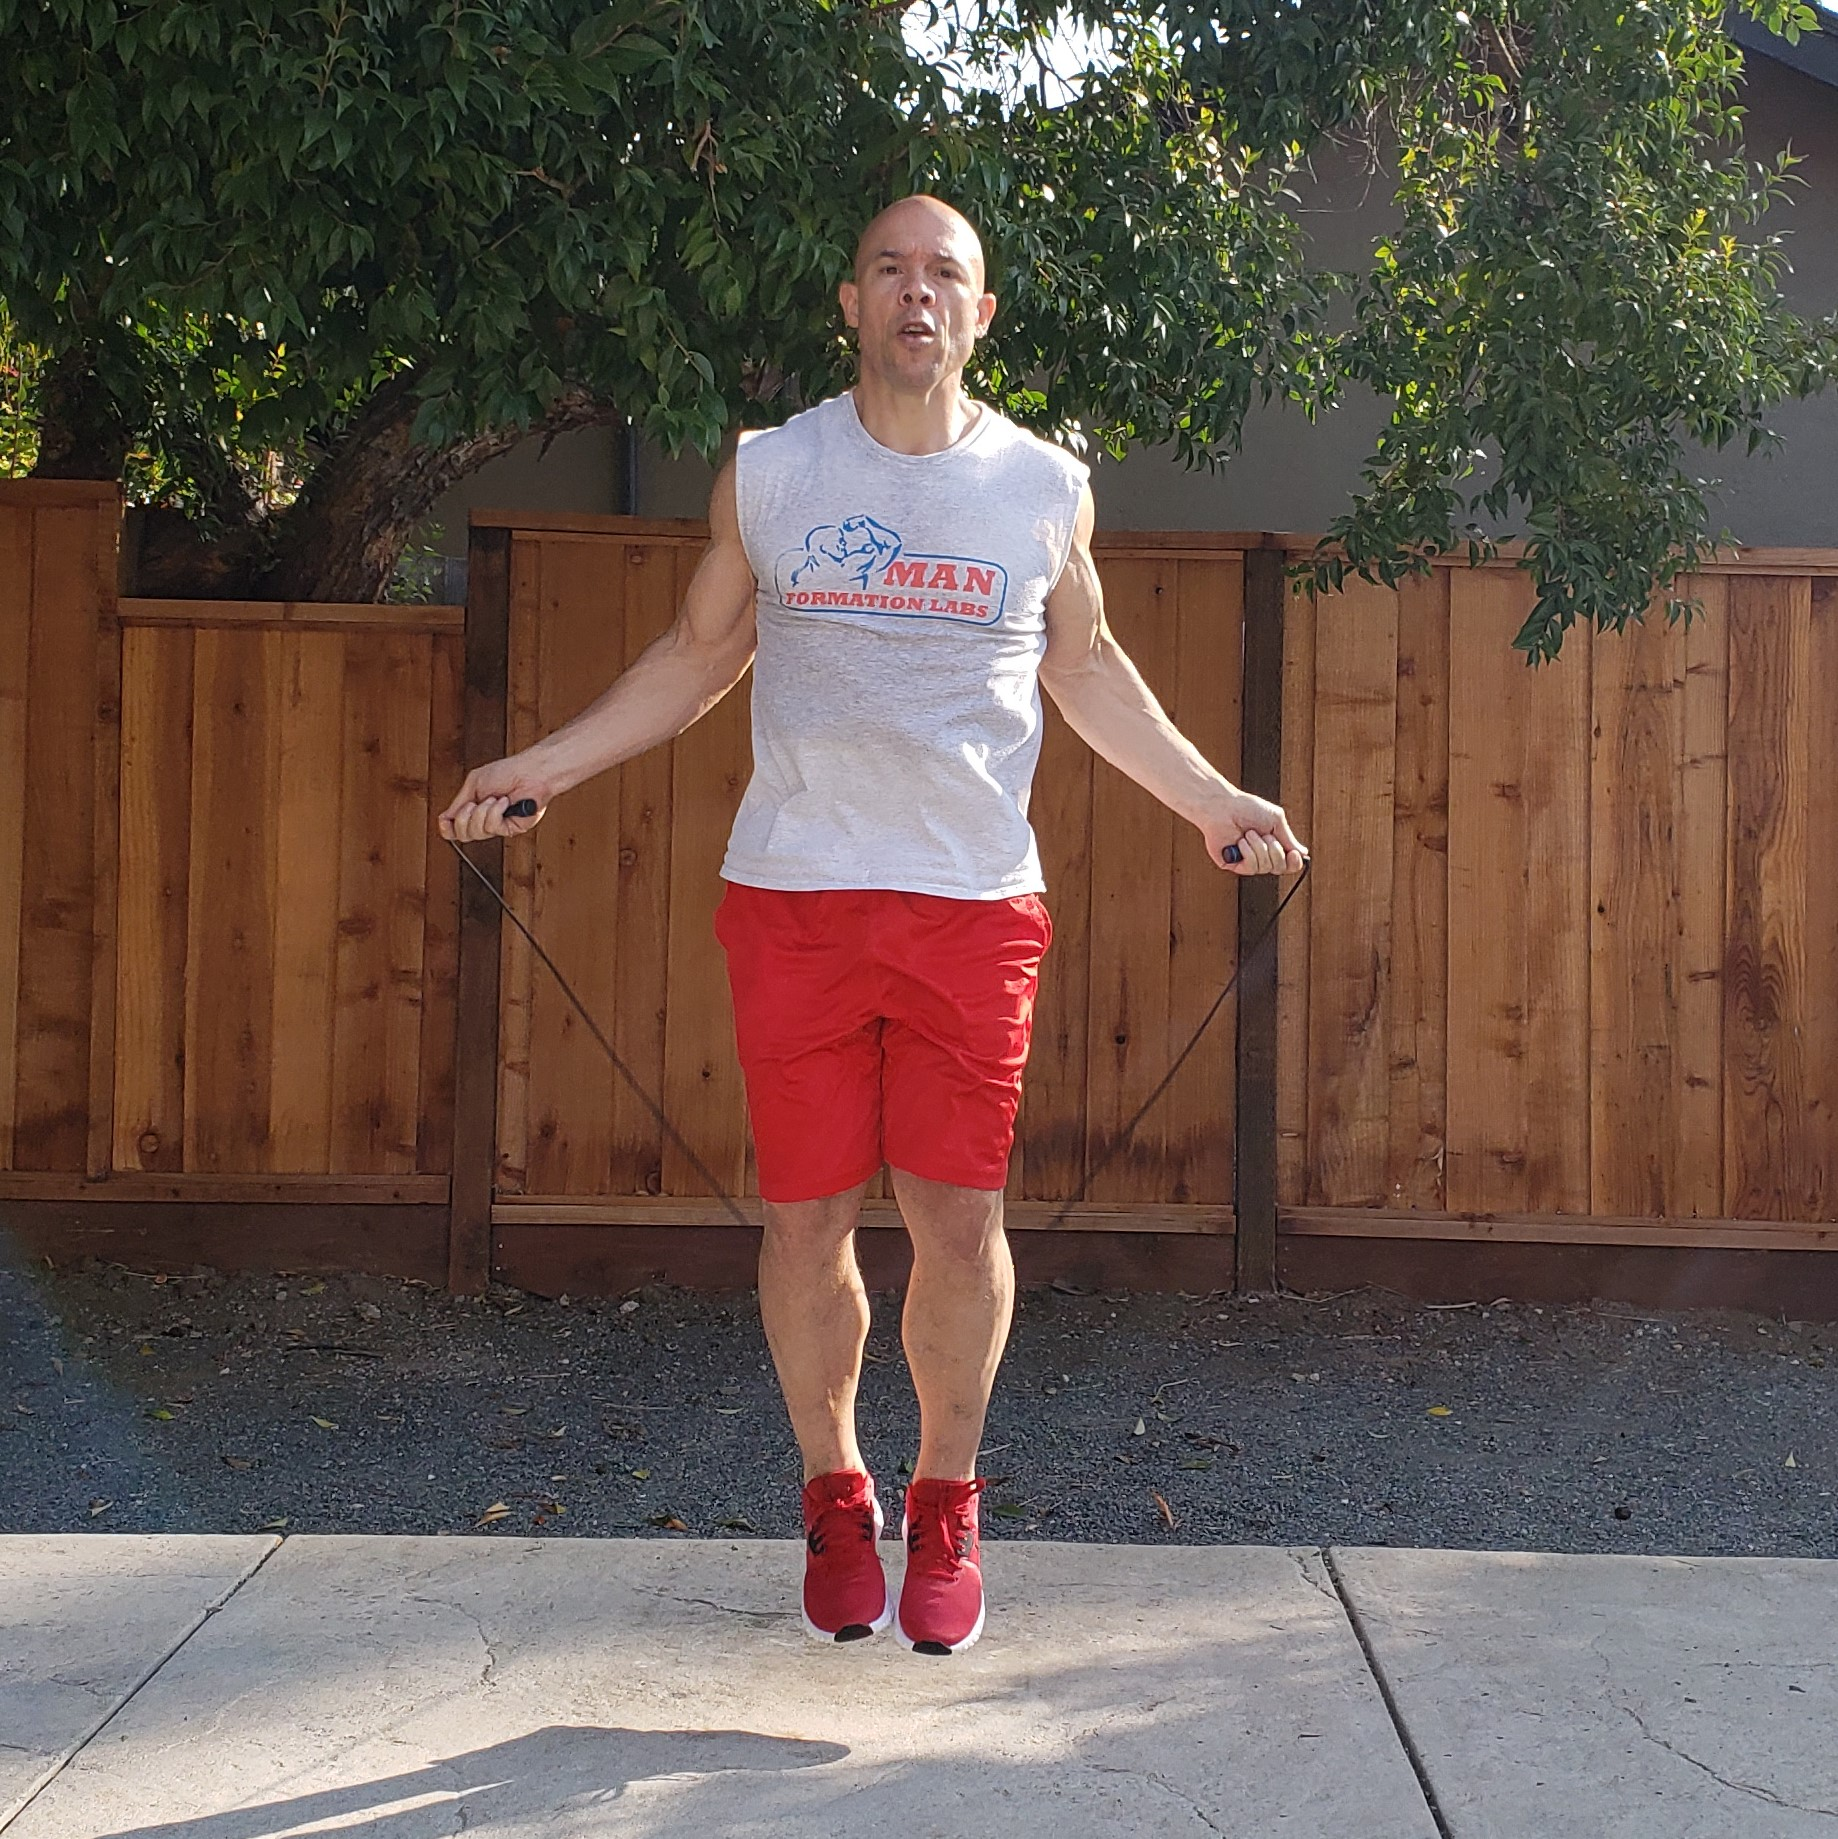 1 jump rope 15 x 15 x 15 Workouts For Older Men HOME Gym Workout #4